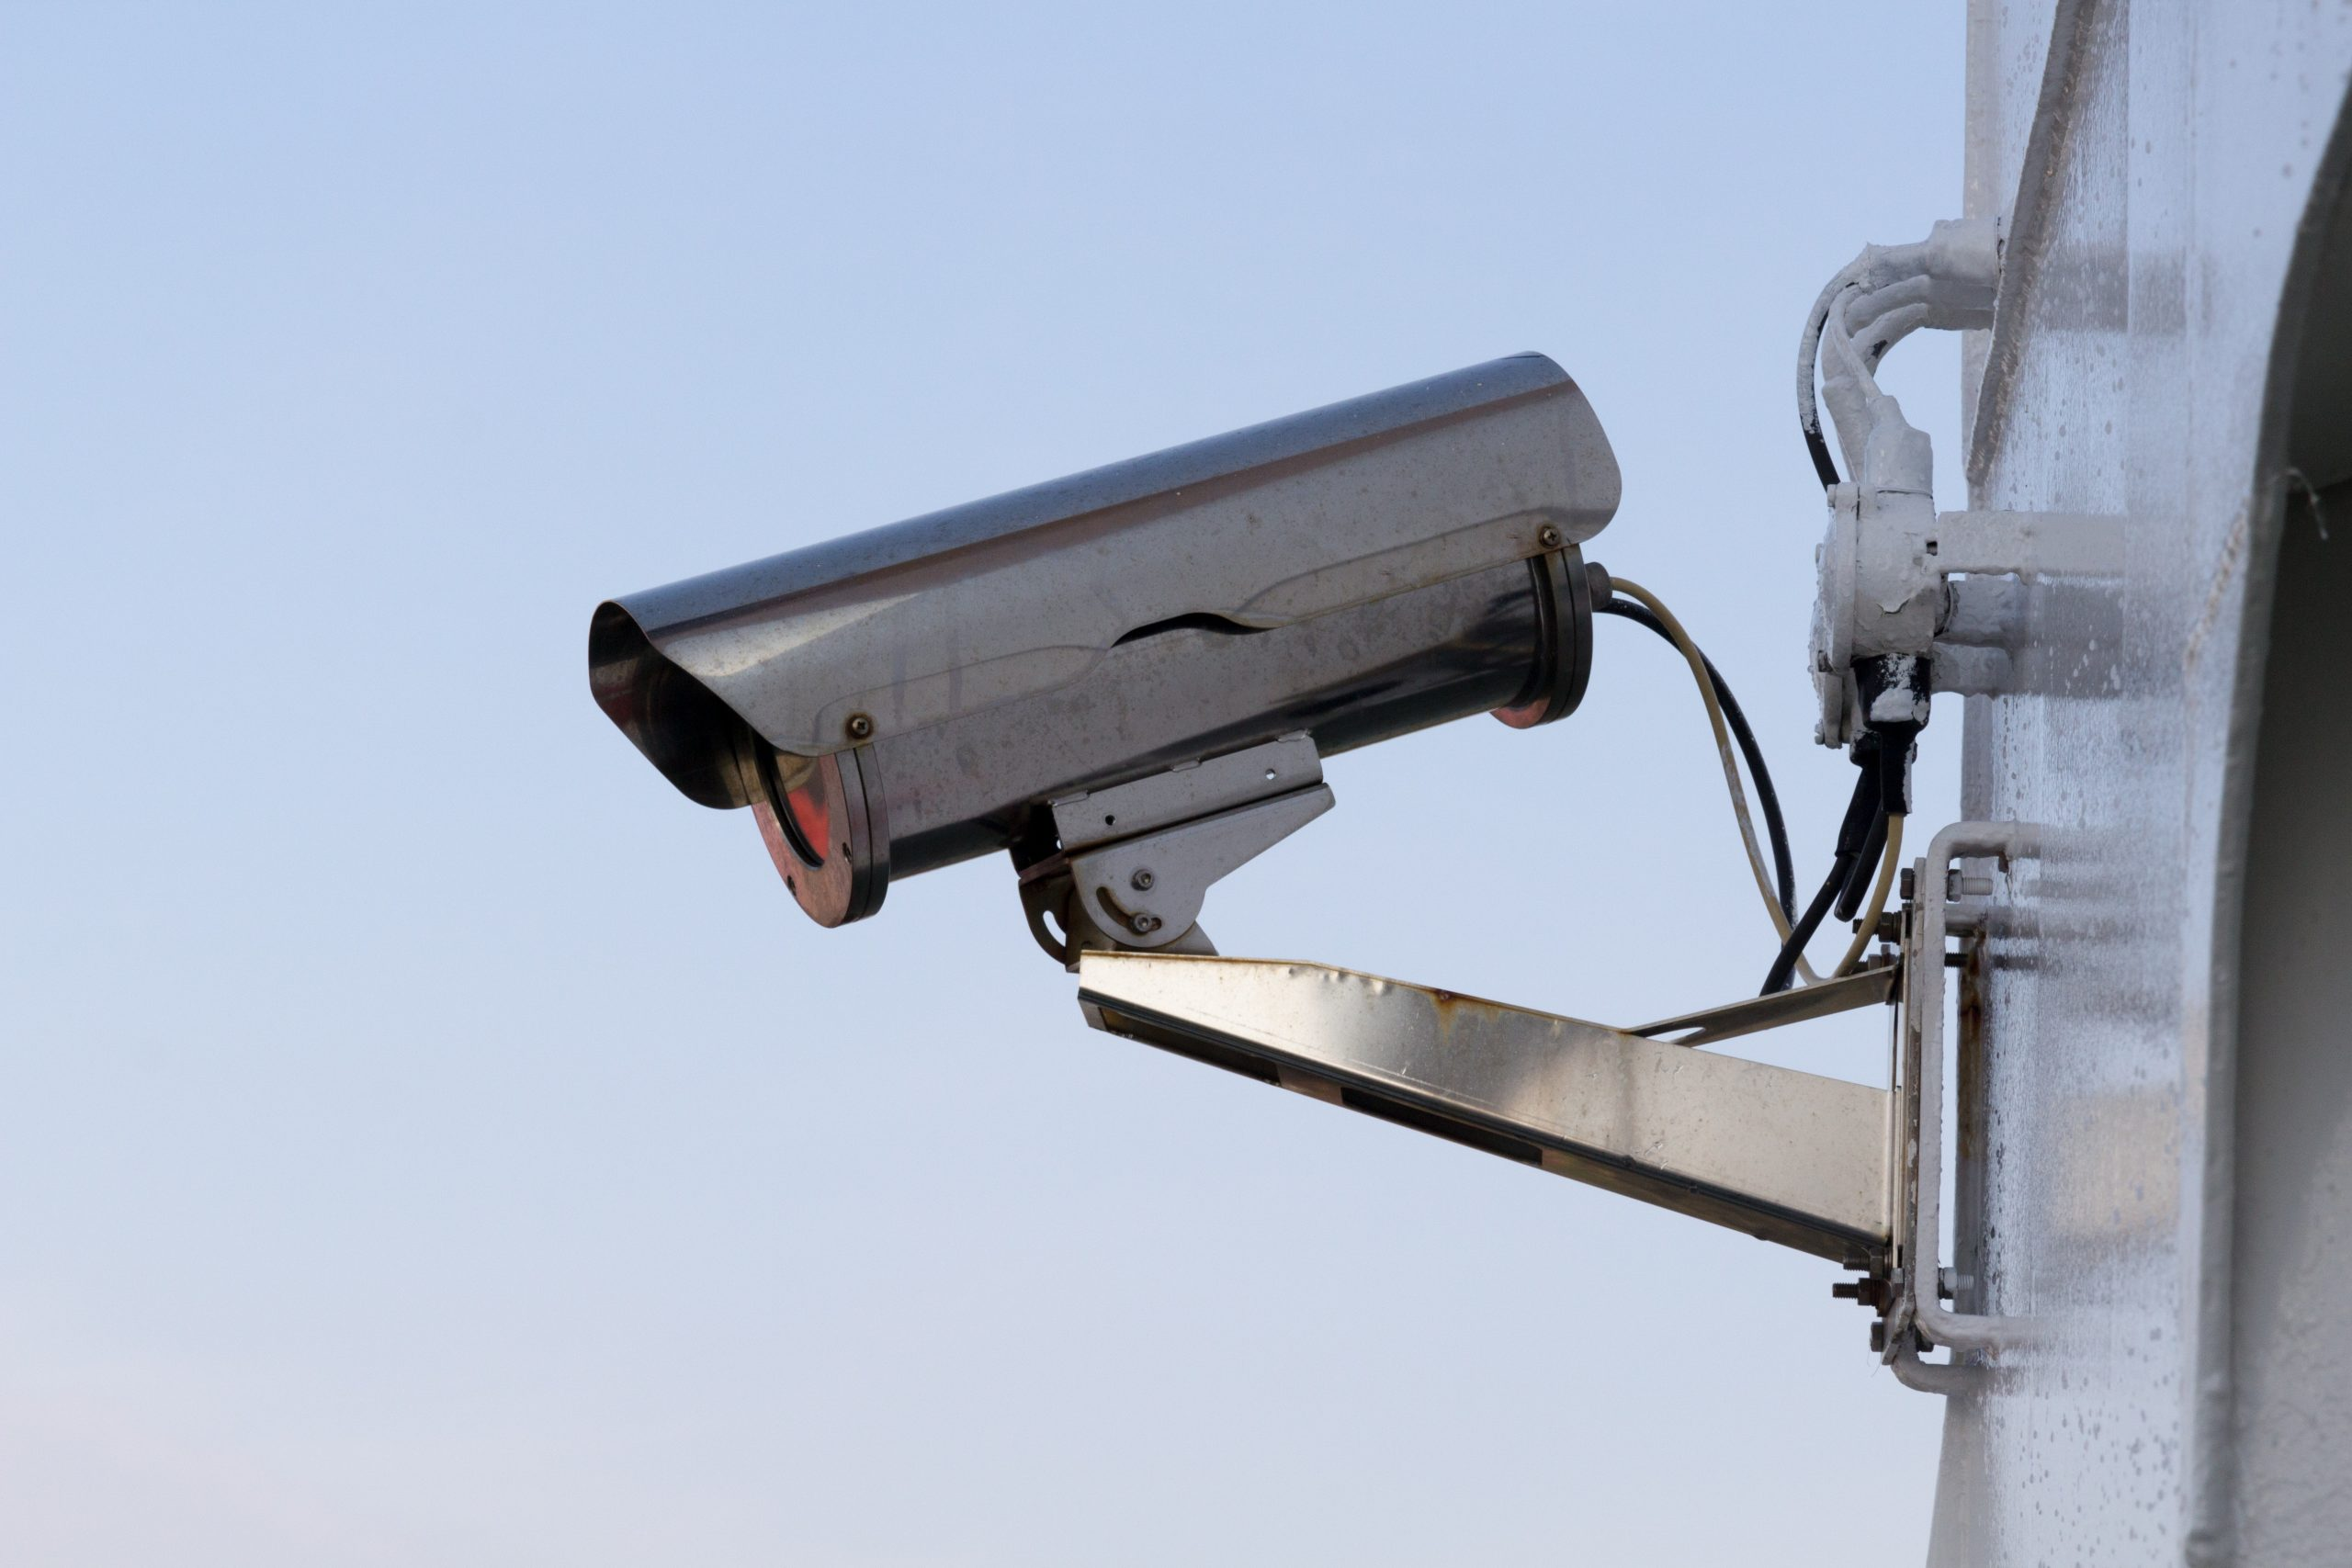 close up of silver security camera on metal structure